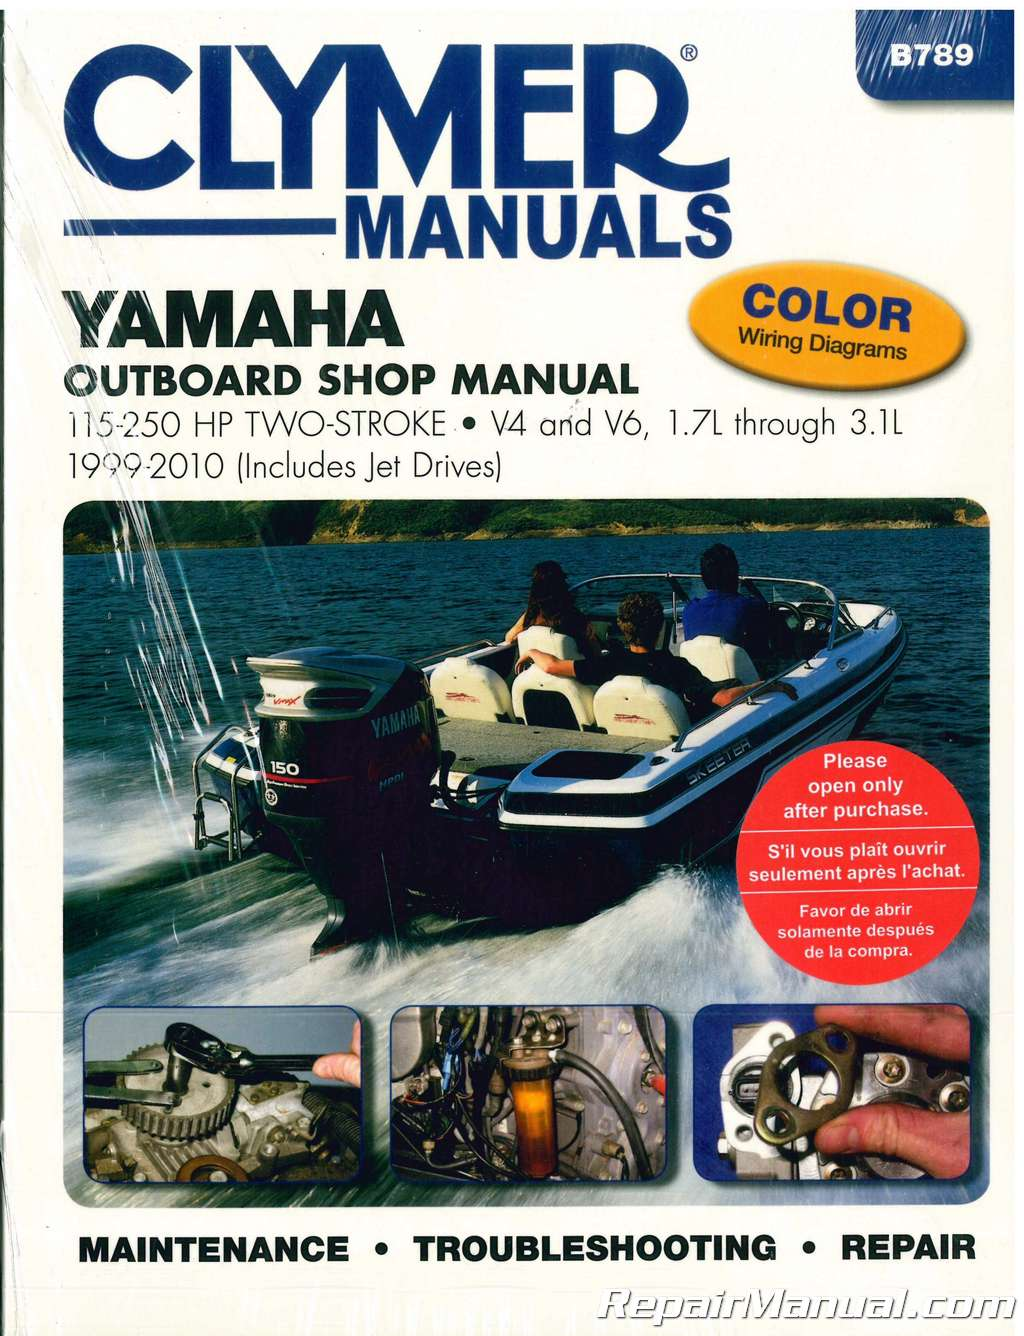 Clymer Yamaha 115 250 Hp Two Stroke Outboards 1999 2010 Boat Repair 99 Outboard Wiring Manual